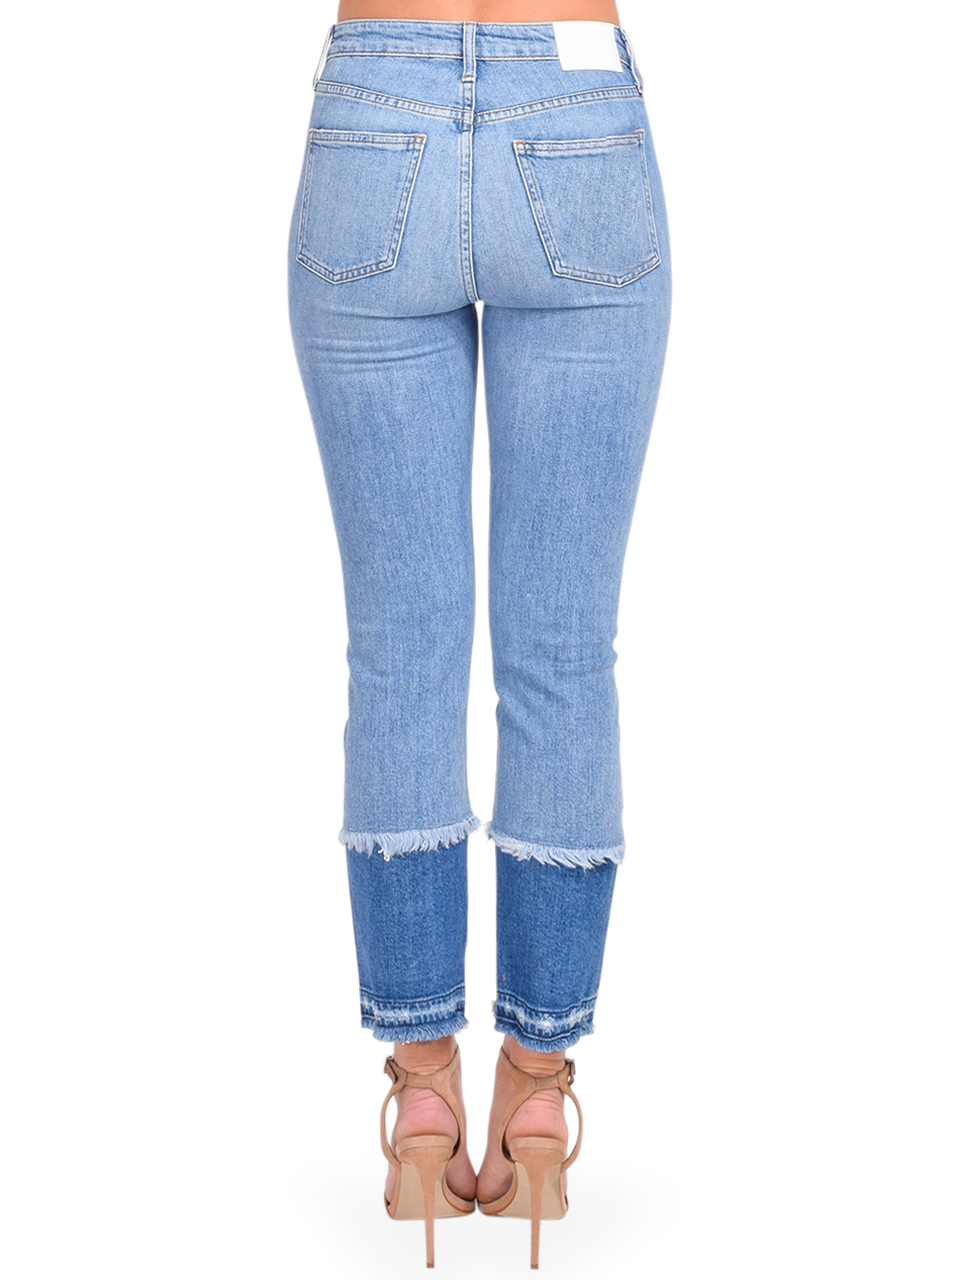 River Straight Leg Jean in Cayucas Light Wash Back View